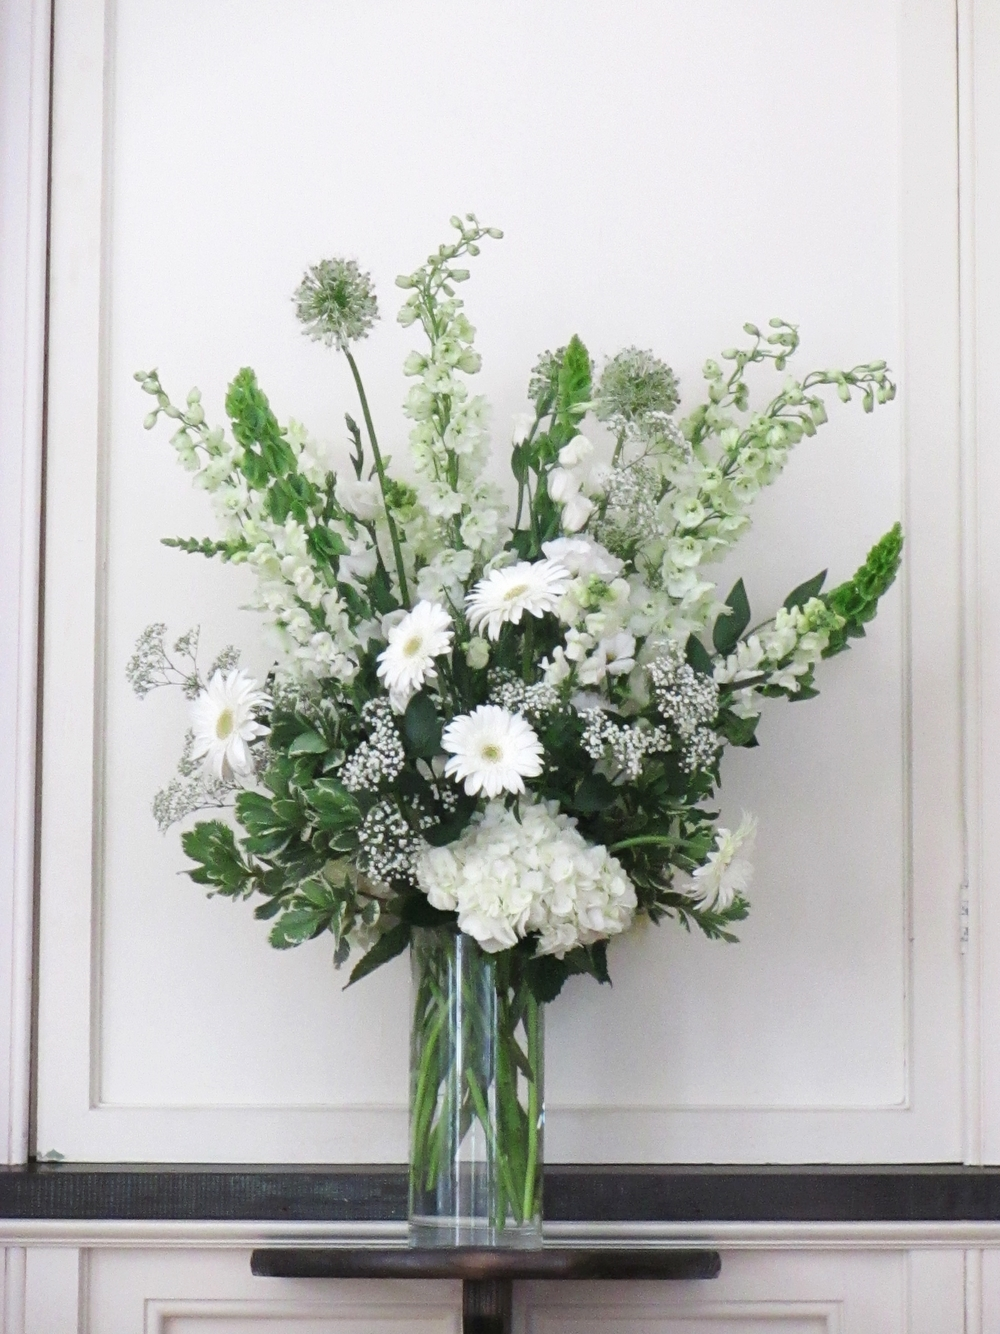 F33 $150 - $200 Large vase arrangement